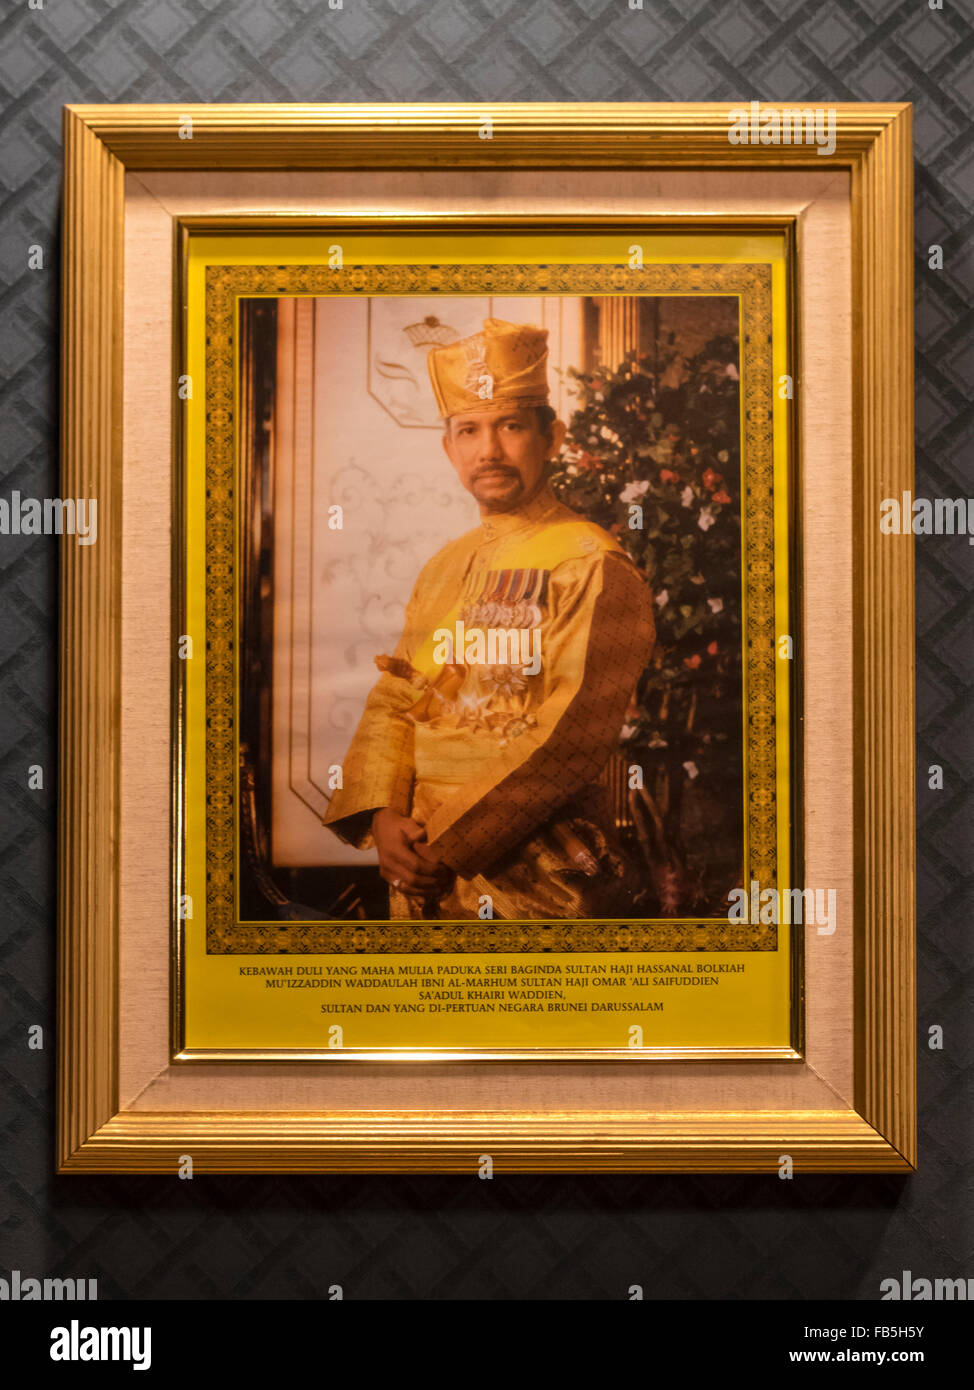 Framed picture of Haji Hassanal Bolkiah, 29th Sultan and Yang Di-Pertuan of Brunei Darussalam. Stock Photo